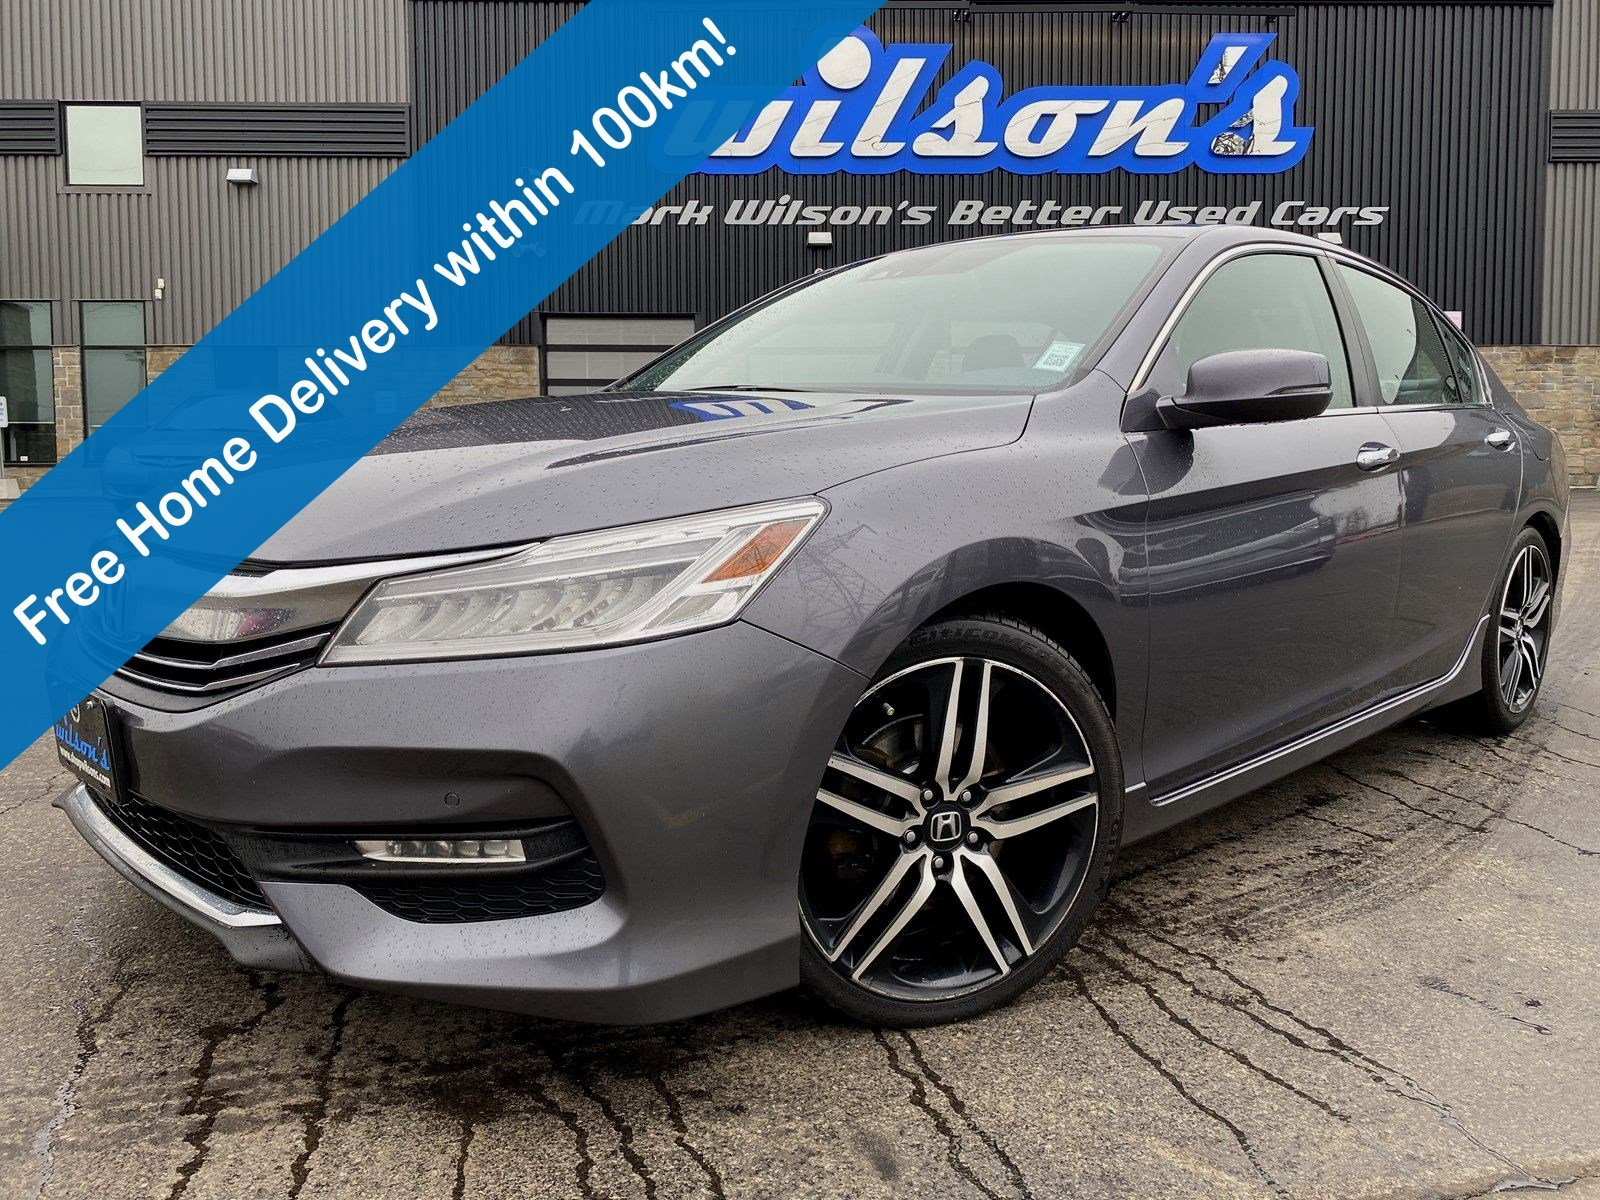 Certified Pre-Owned 2017 Honda Accord Touring, Leather, Navigation, Sunroof, New Tires, Heated Seats, Rear Camera, Parking Sensors & more!